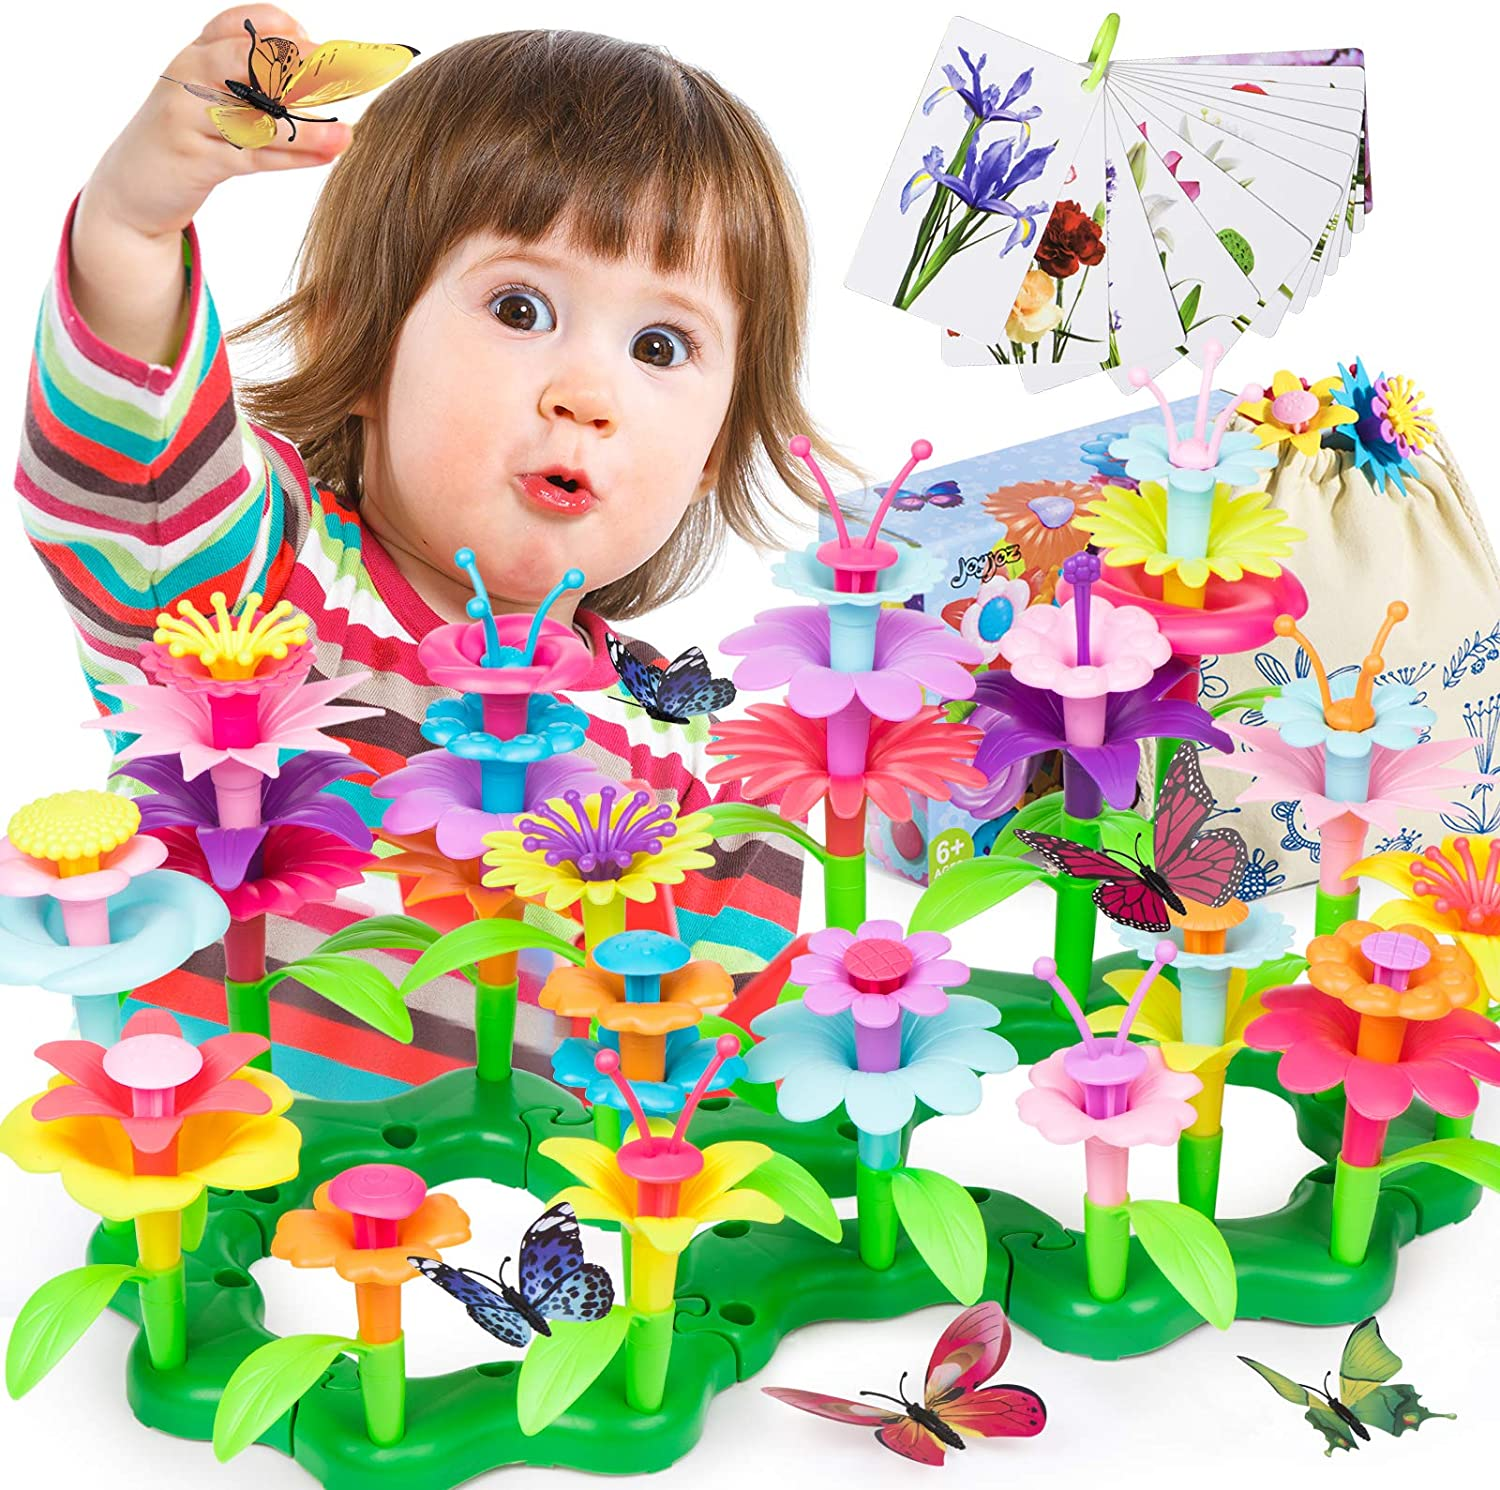 Joyjoz Flower Garden Building Toys, Educational Toys for 3 4 5 6 Year Old Girls' Gifts, Pretend Gardening Toys, Build a Bouquet Set for Toddler Kids, with Butterflies, Flash Cards, Storage Bag(123Pcs)